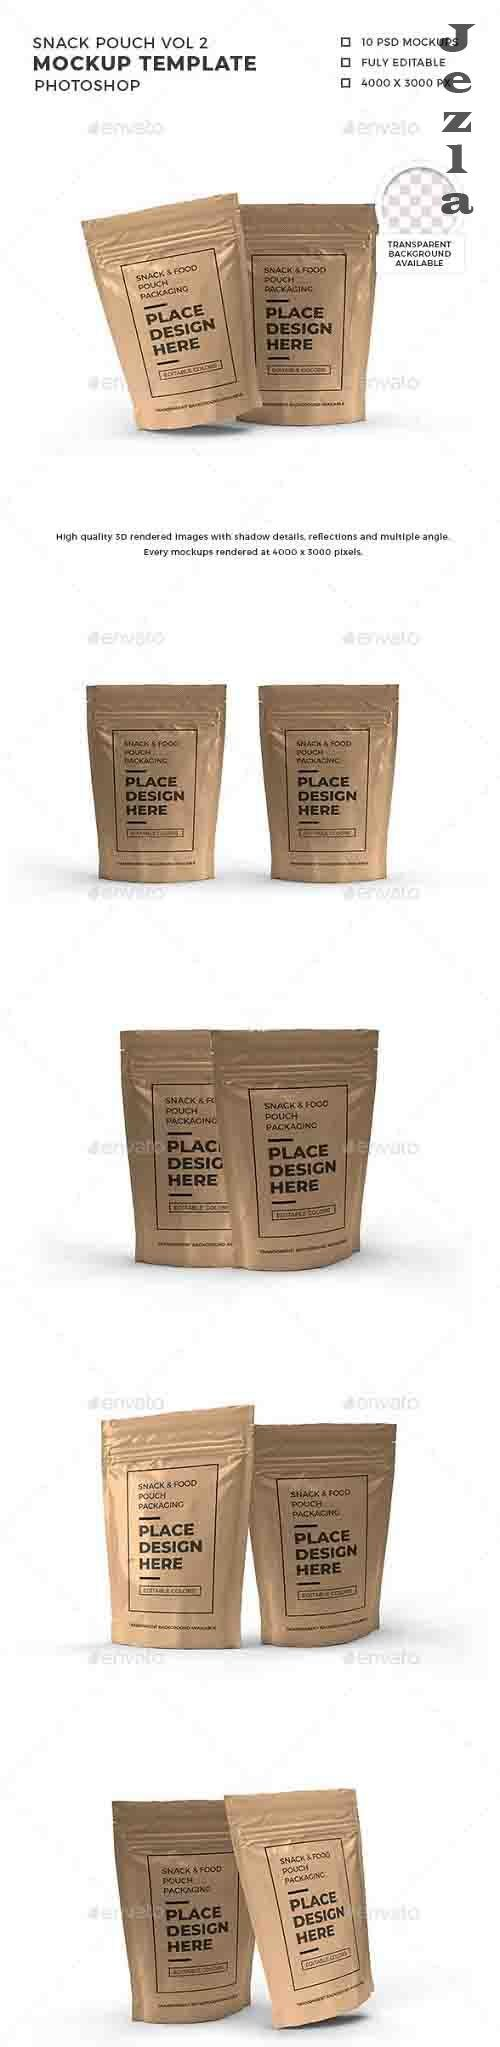 Snack Pouch Packaging Mockup Template Vol 2 - 32588901